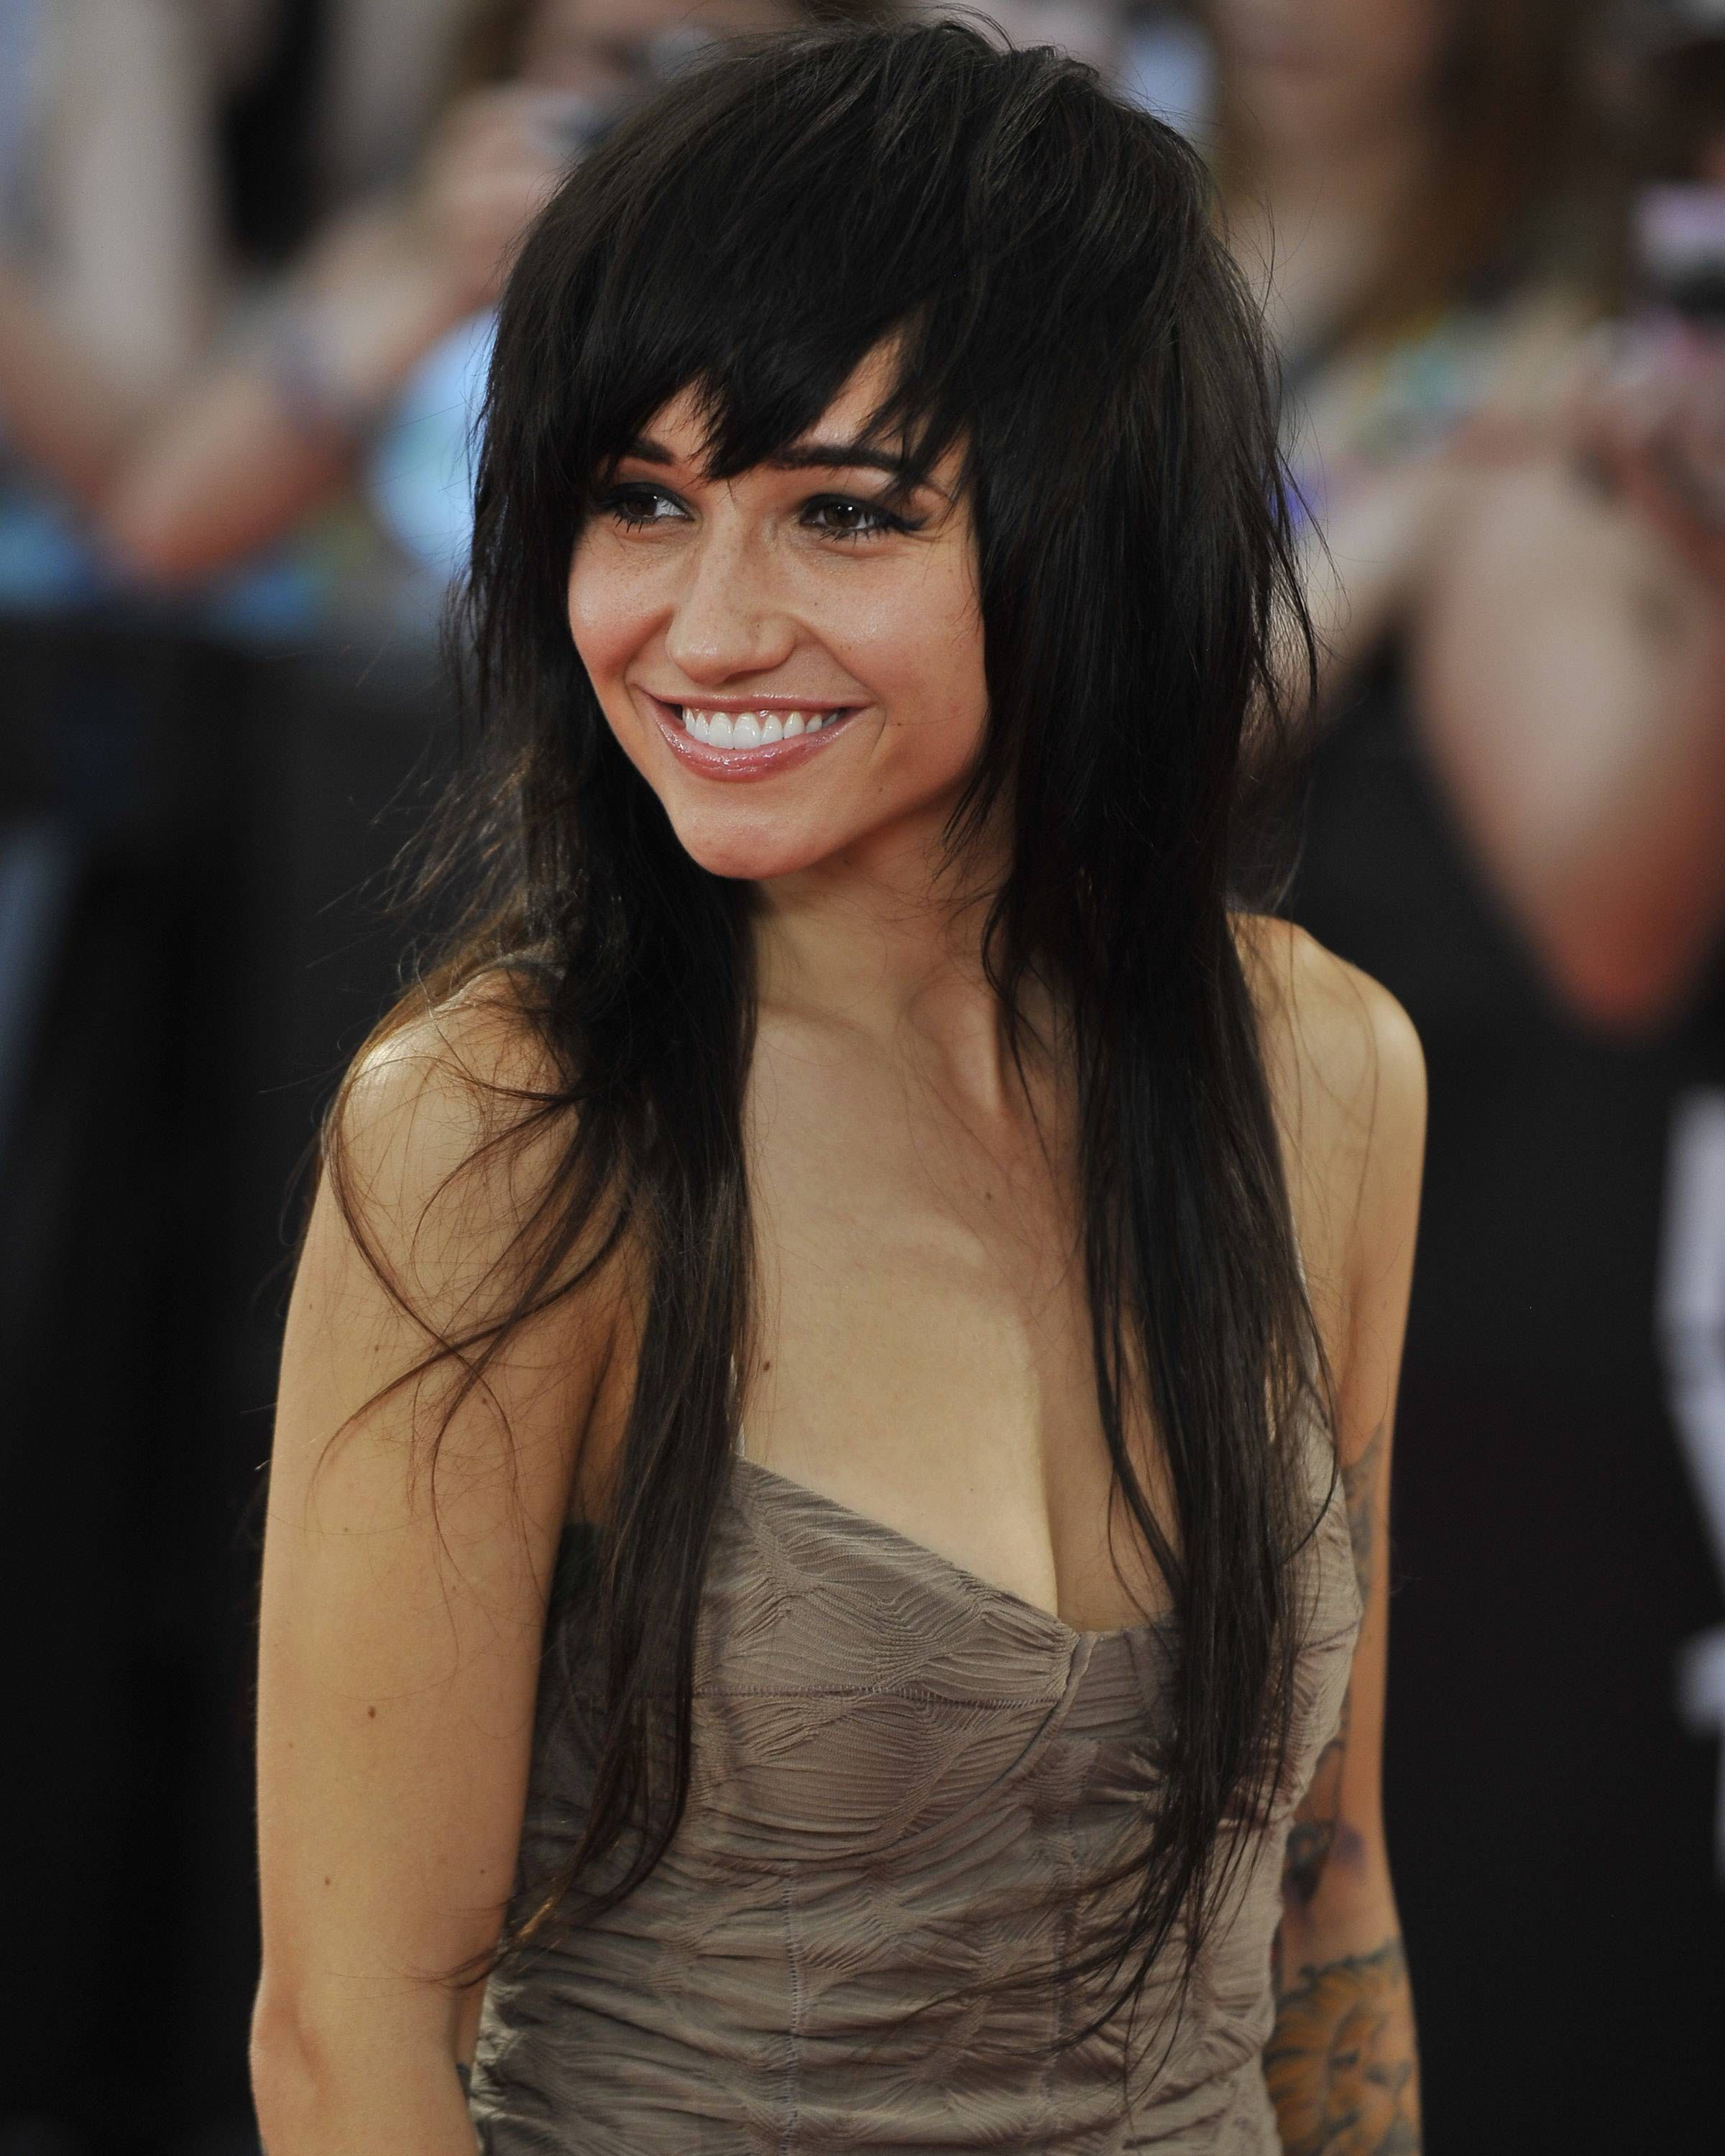 lights singer hair - Google Search | hairstyles ...